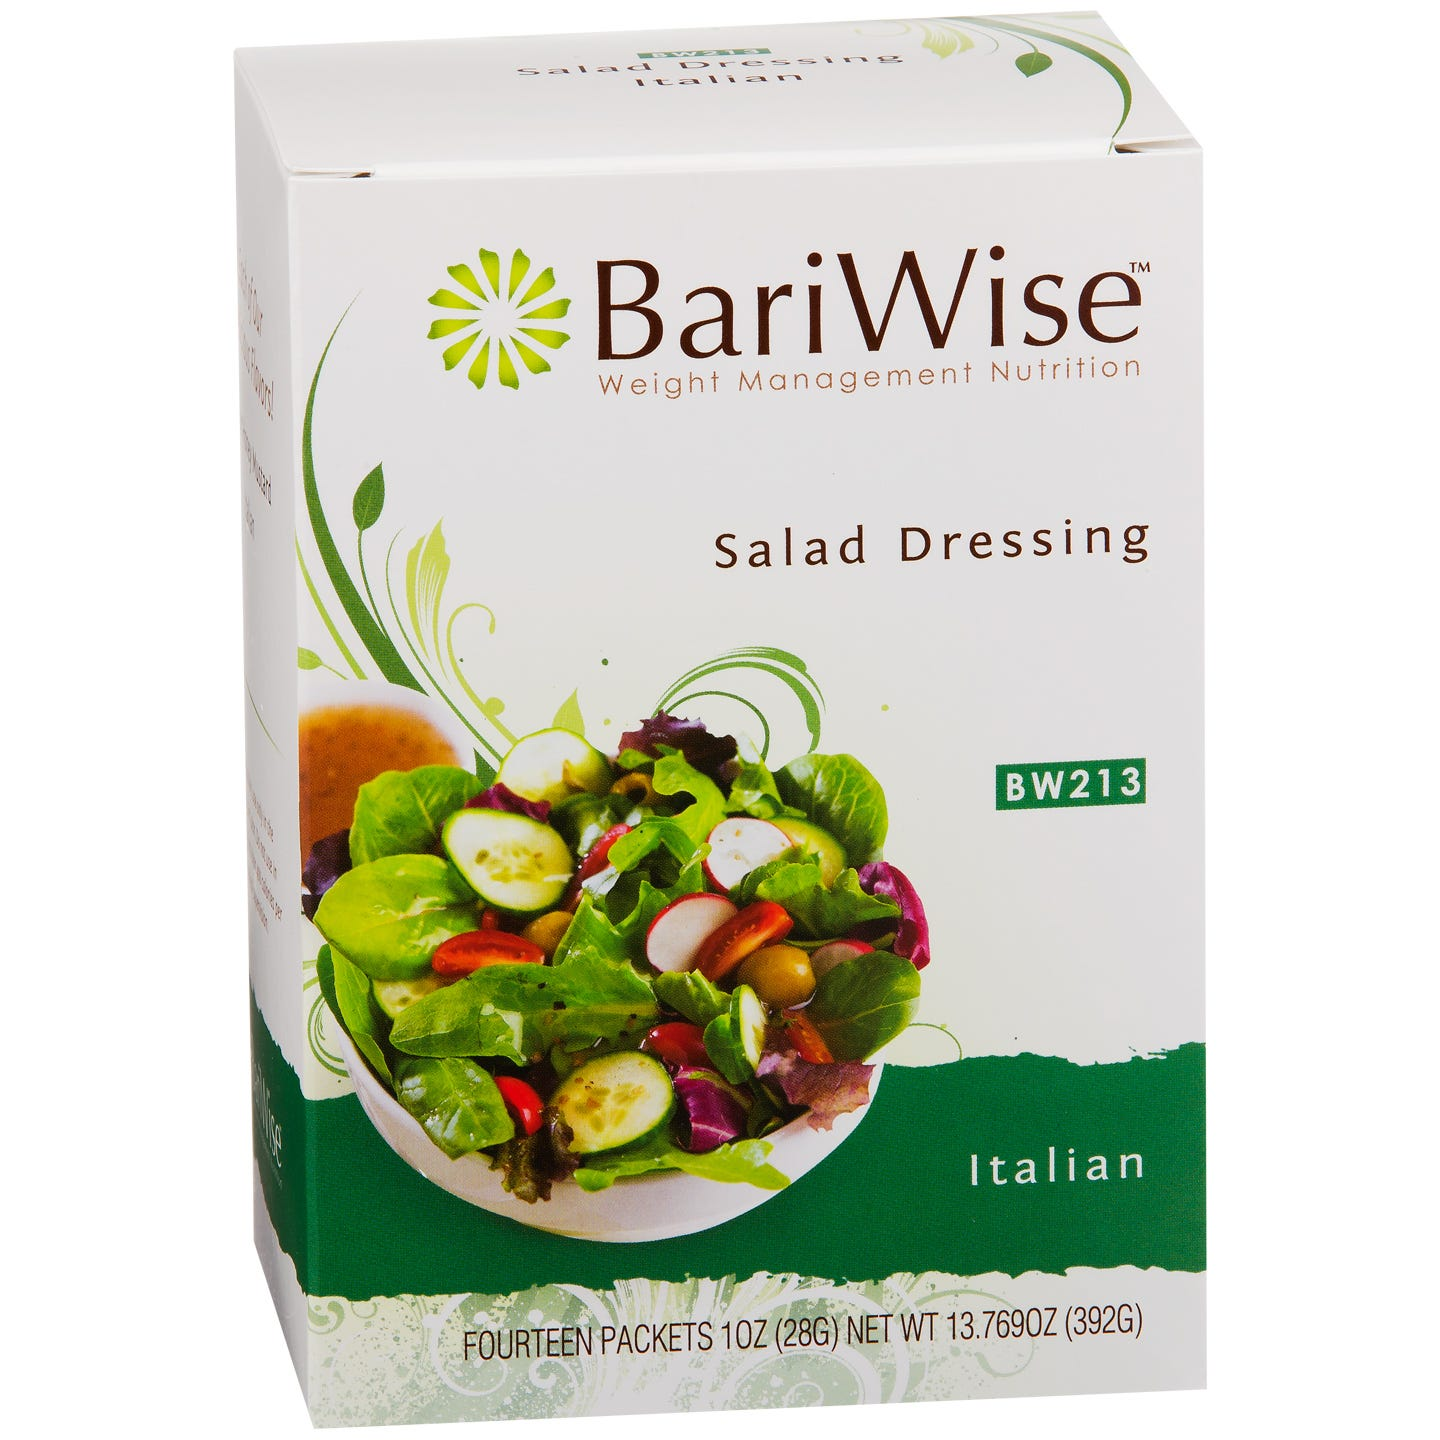 Fat-Free Diet Salad Dressing Italian (14 ct) - BariWise - Rapid Diet Weight Loss Products Shop